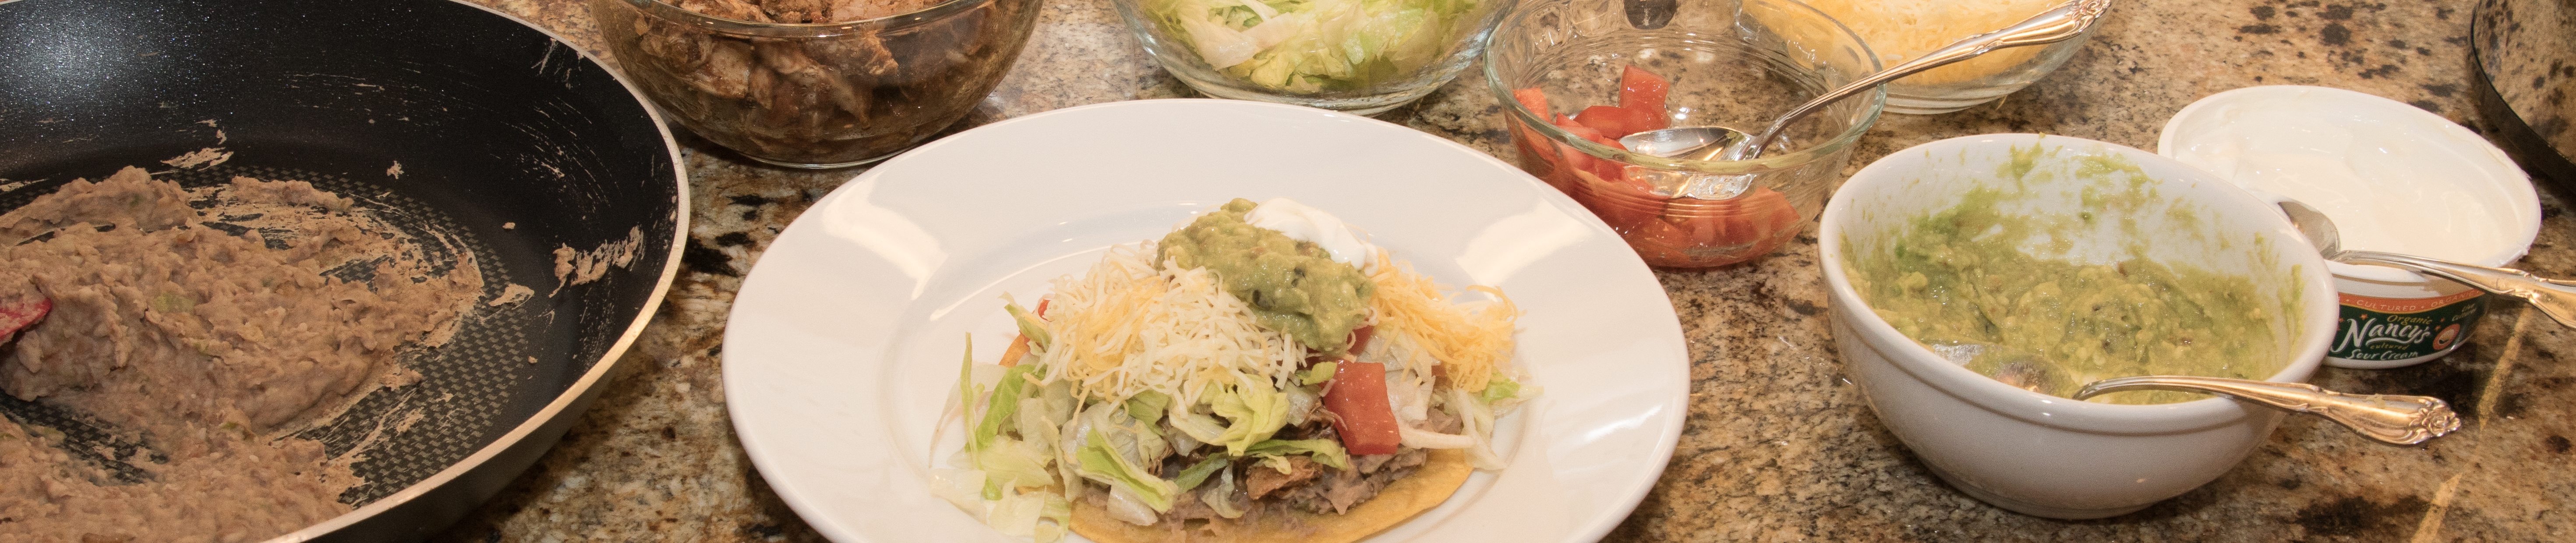 Chicken tostadas banner photo